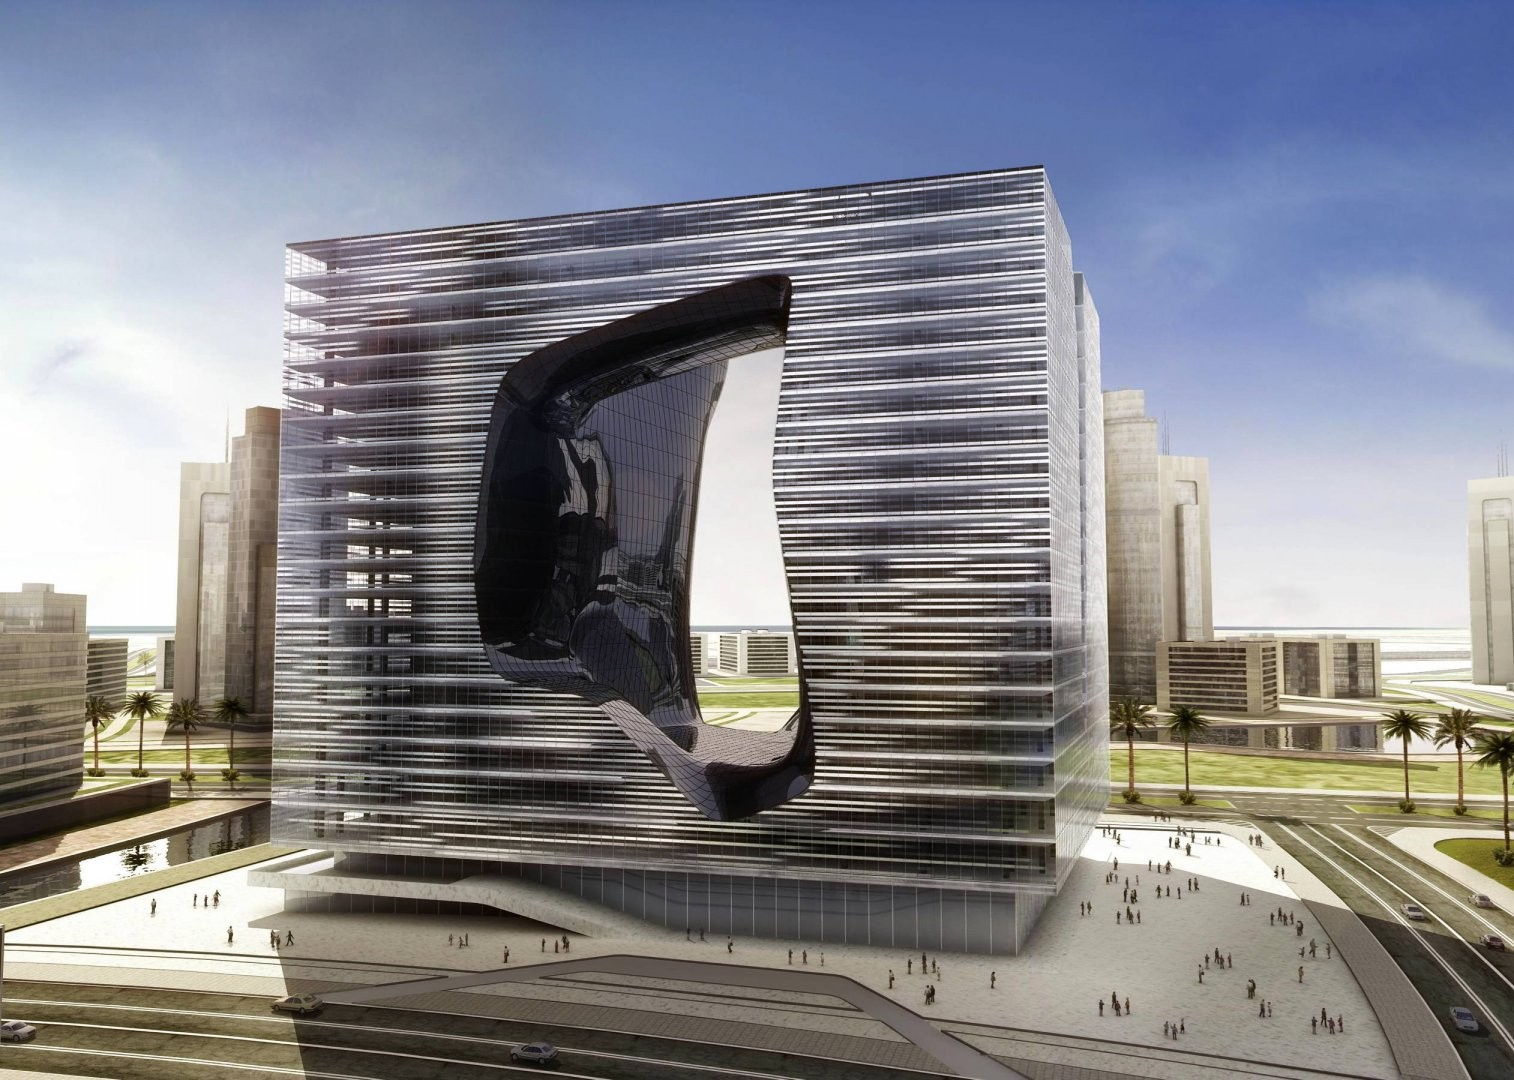 zaha hadid designs new office building and hotel for dubai archdaily. Black Bedroom Furniture Sets. Home Design Ideas